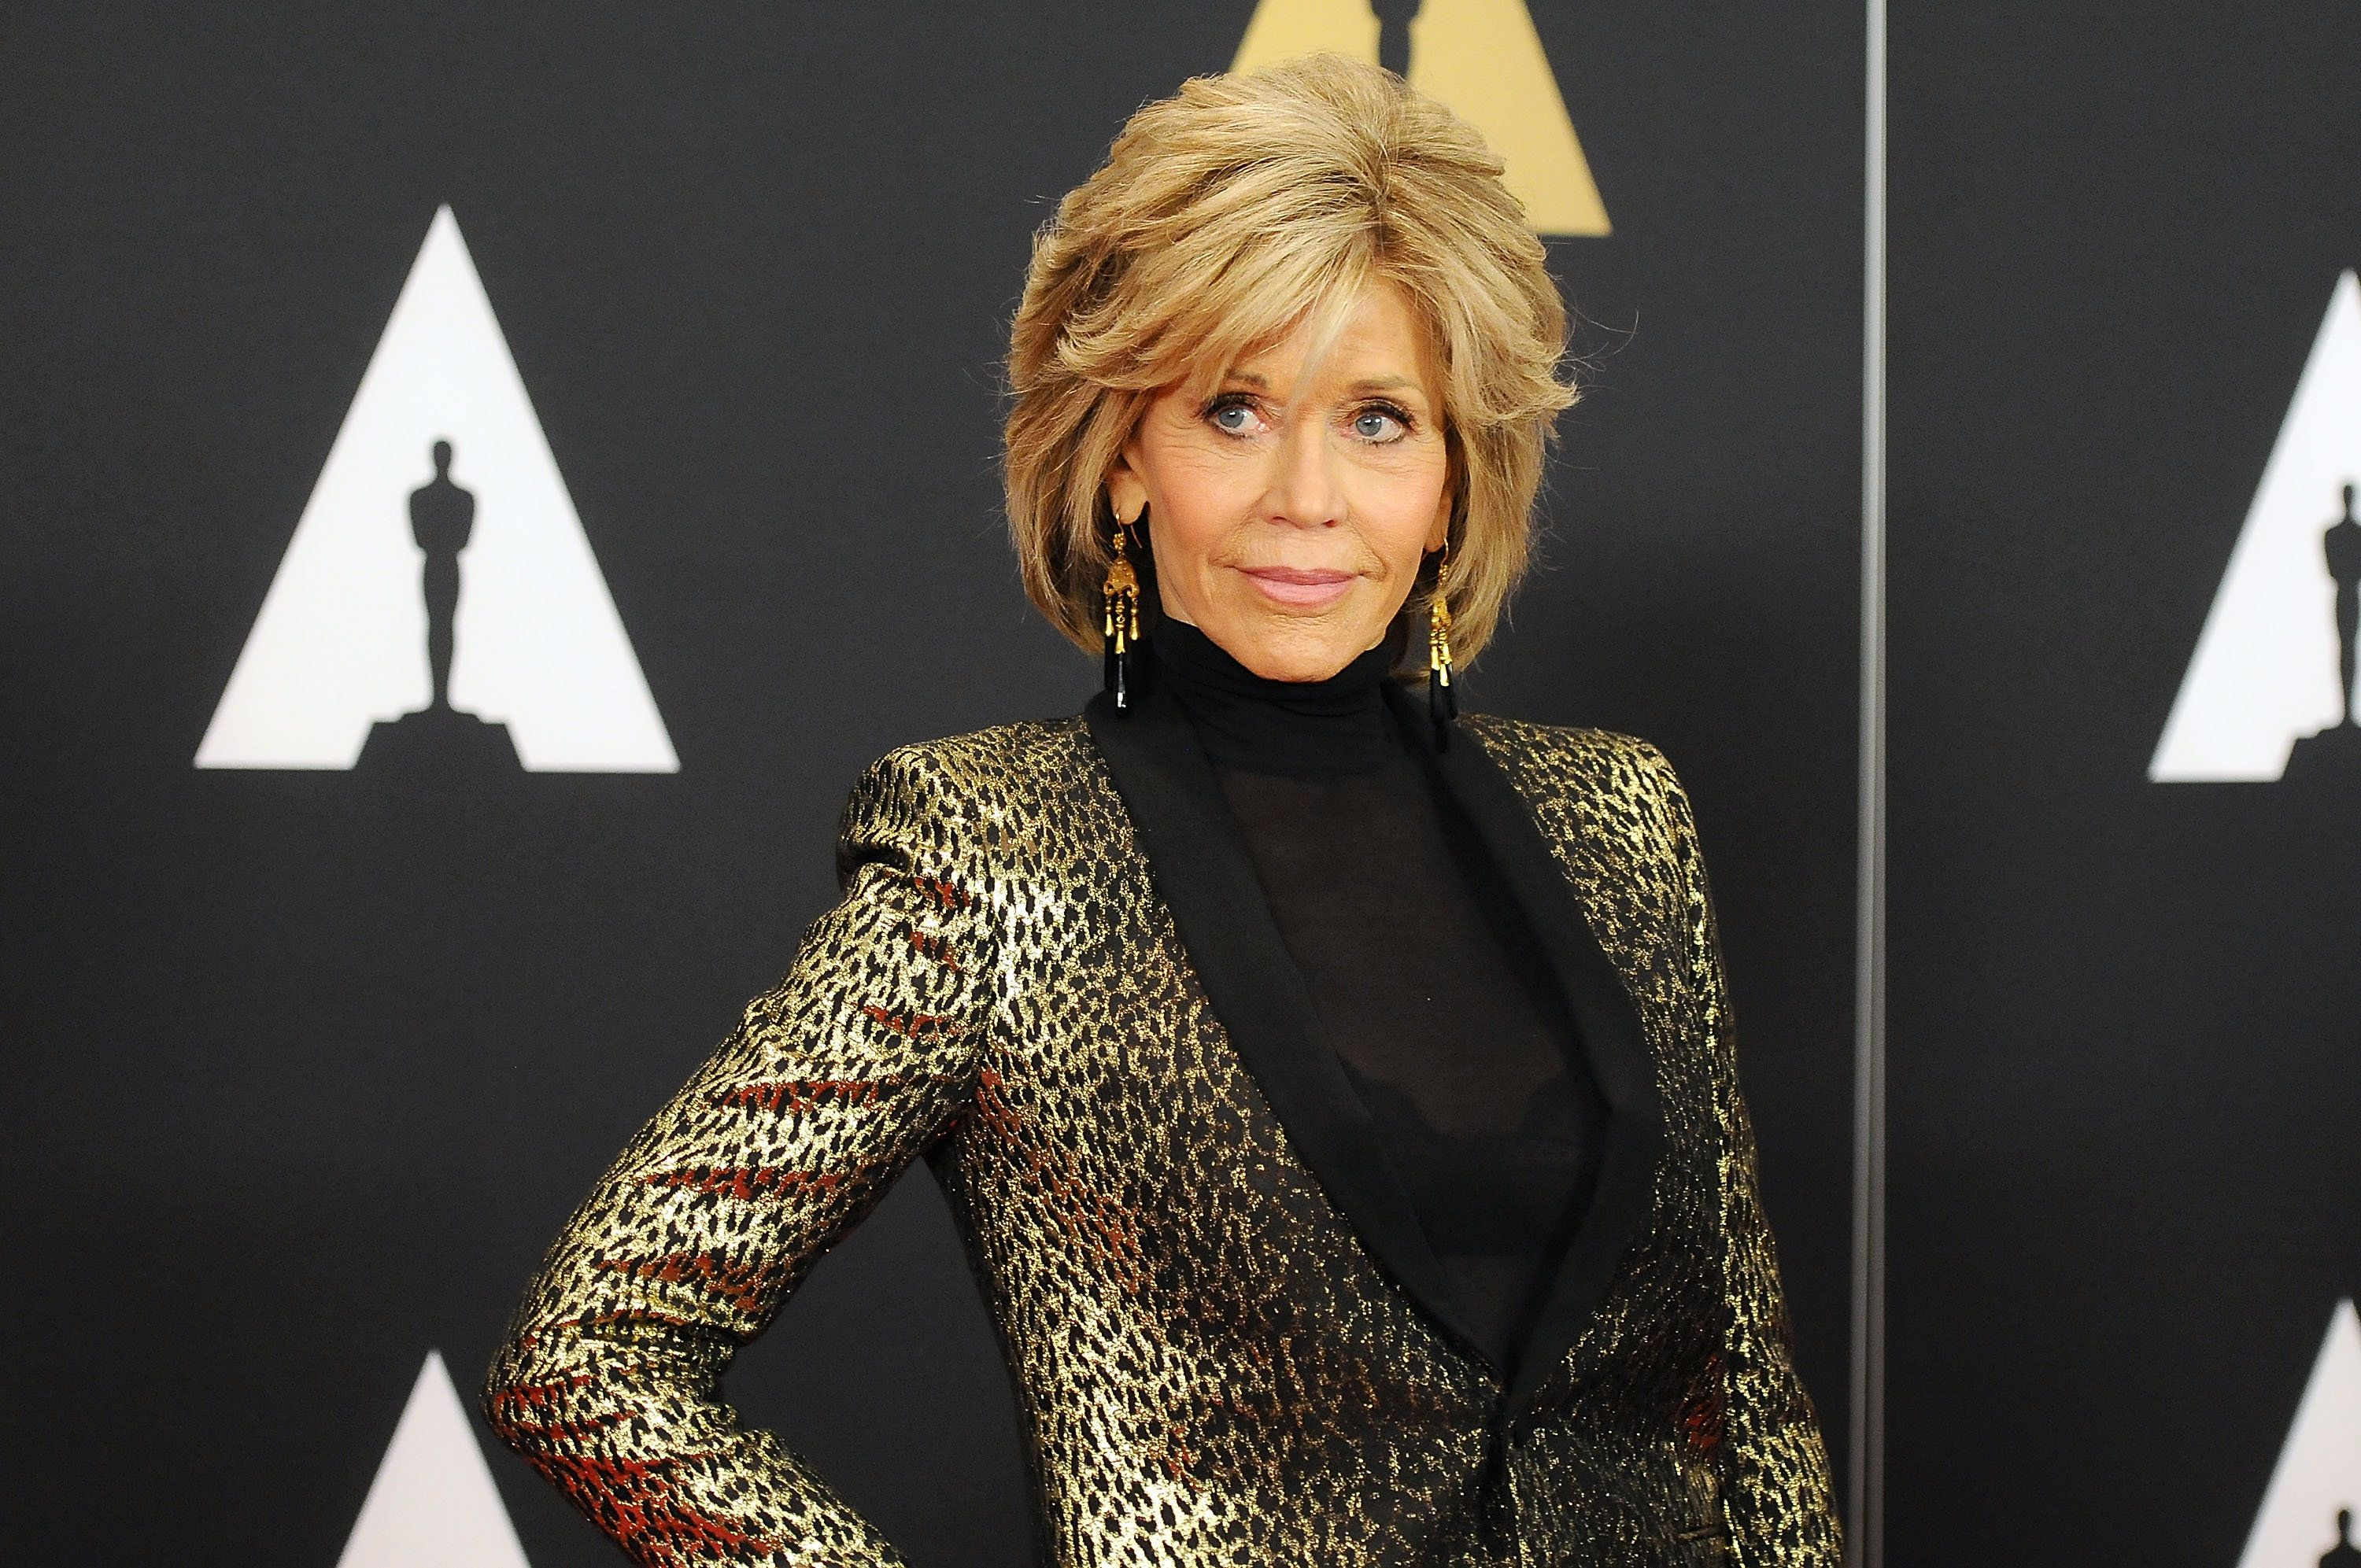 HOLLYWOOD, CA - NOVEMBER 14:  Jane Fonda attends the Academy of Motion Picture Arts and Sciences' 7th Annual Governors Awards at The Ray Dolby Ballroom at Hollywood & Highland Center on November 14, 2015 in Hollywood, California.  (Photo by Araya Diaz/WireImage)